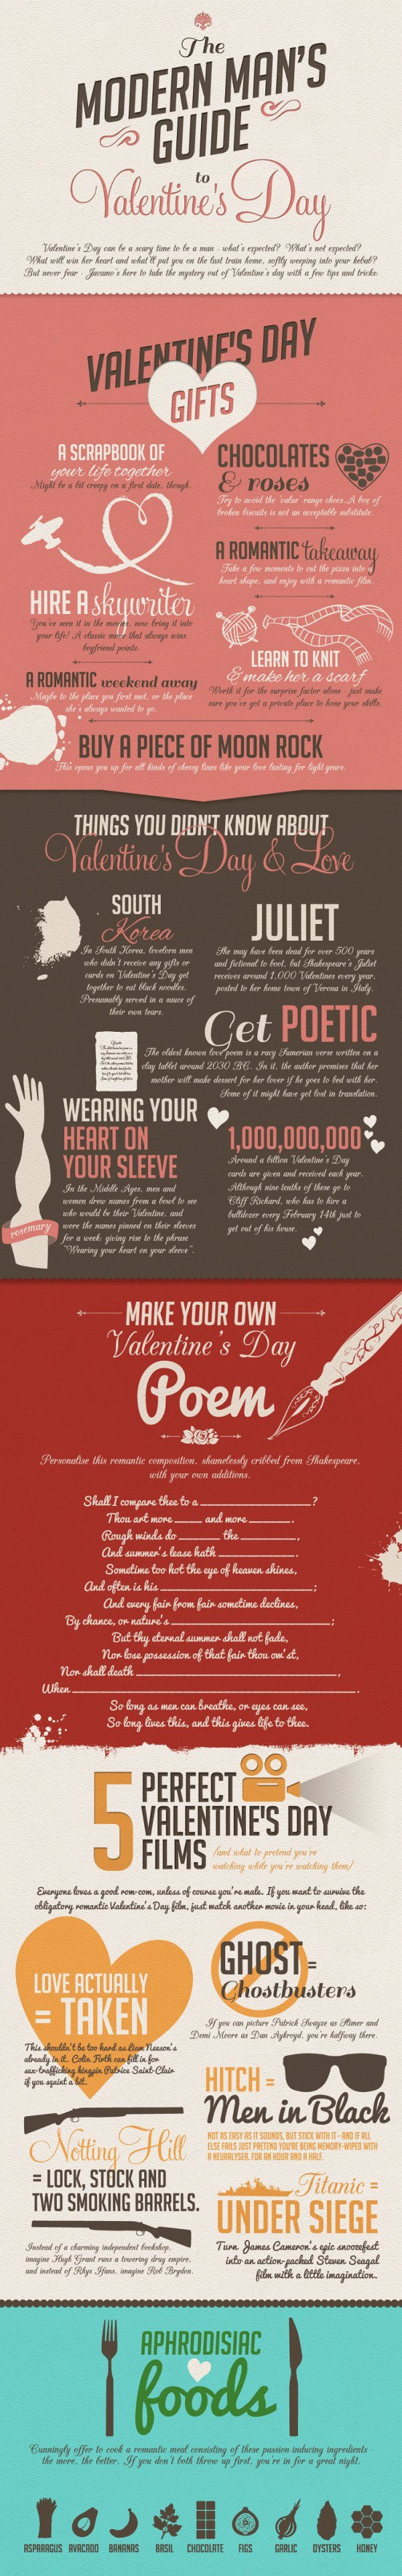 guide-to-valentines-day